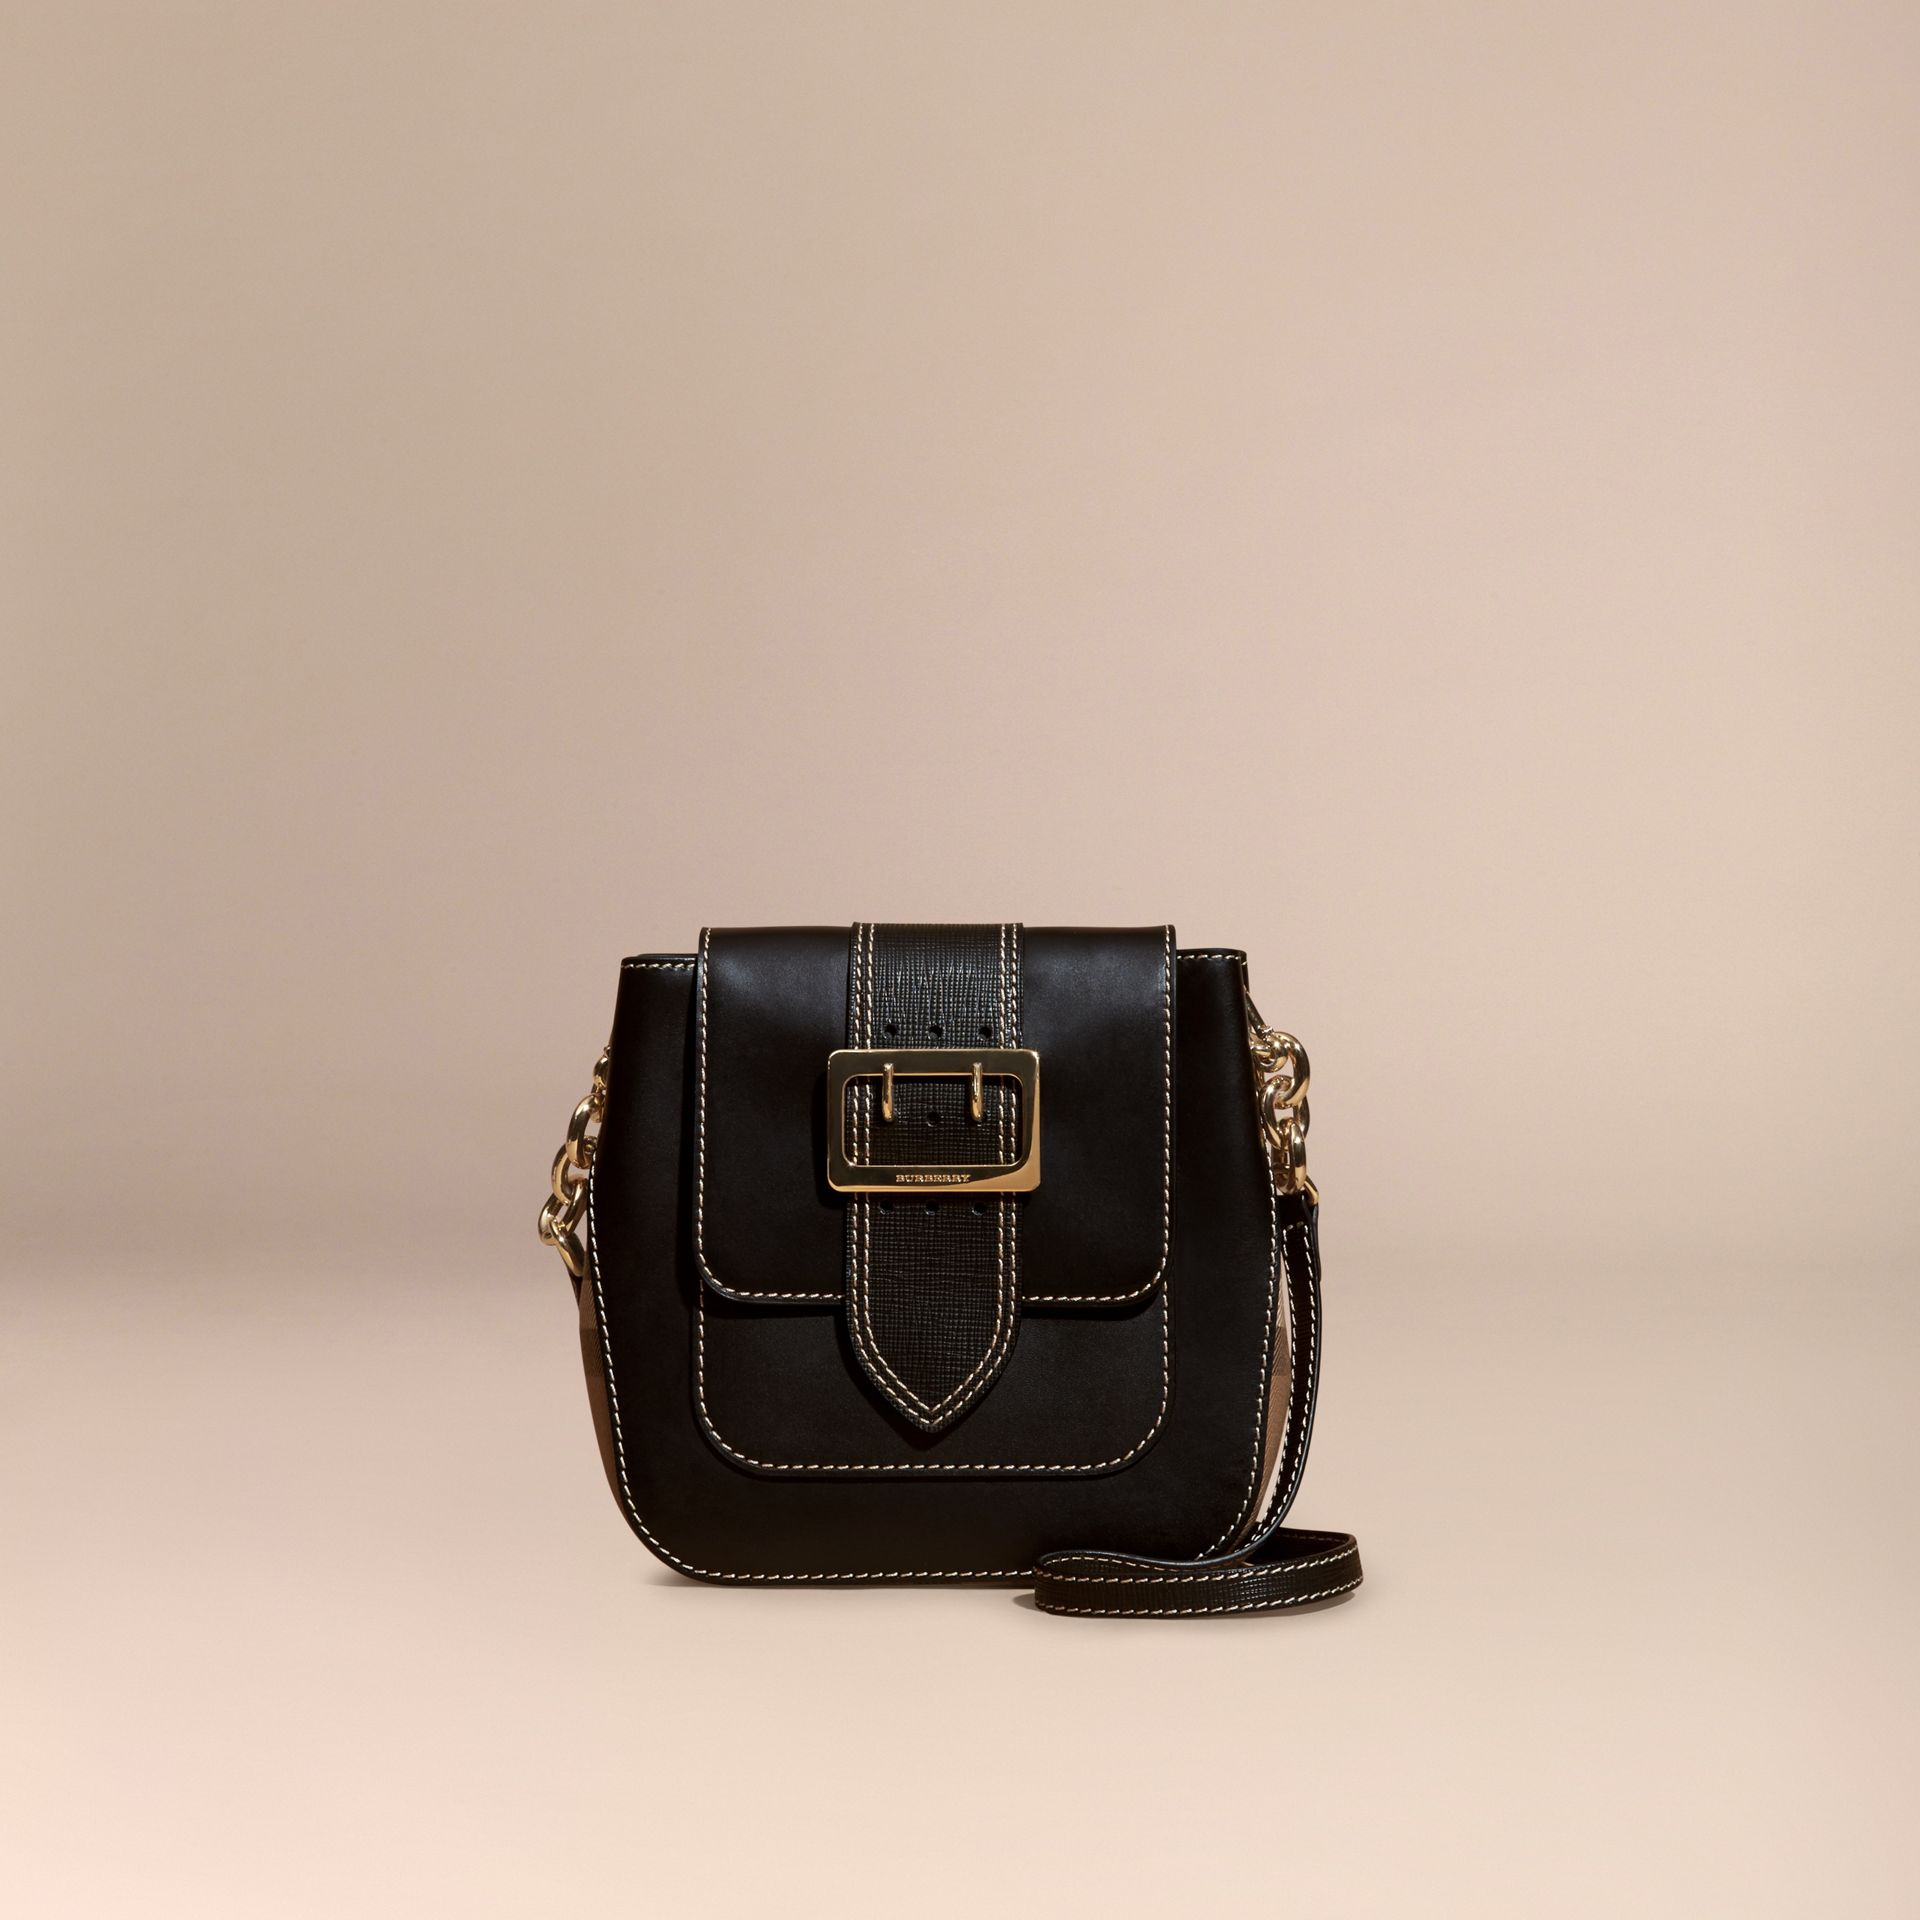 Black The Medium Buckle Bag – Square in Leather and House Check - gallery image 7